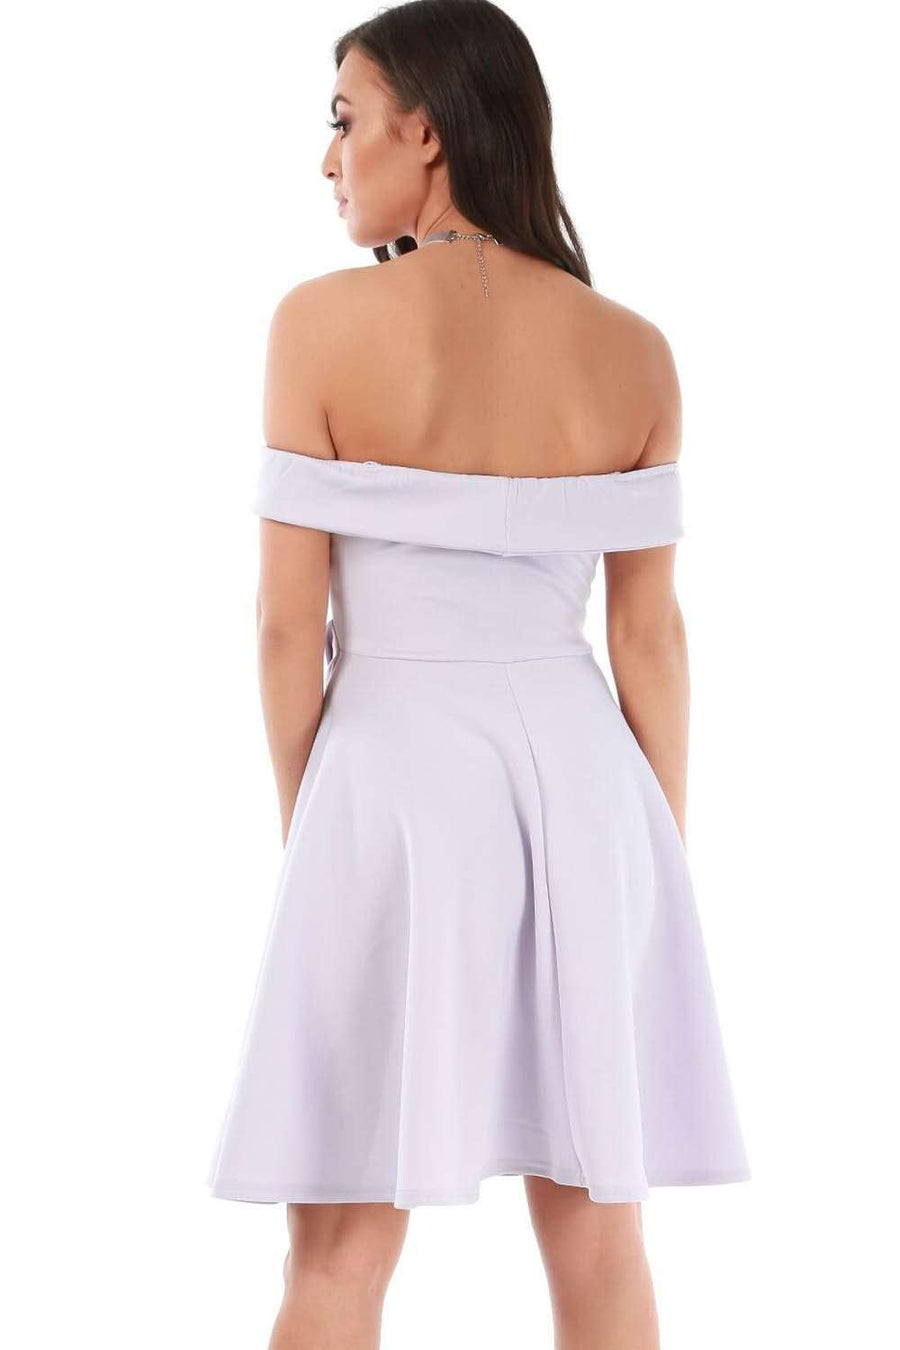 Lilac Off Shoulder Belted Wrap Mini Swing Dress - bejealous-com